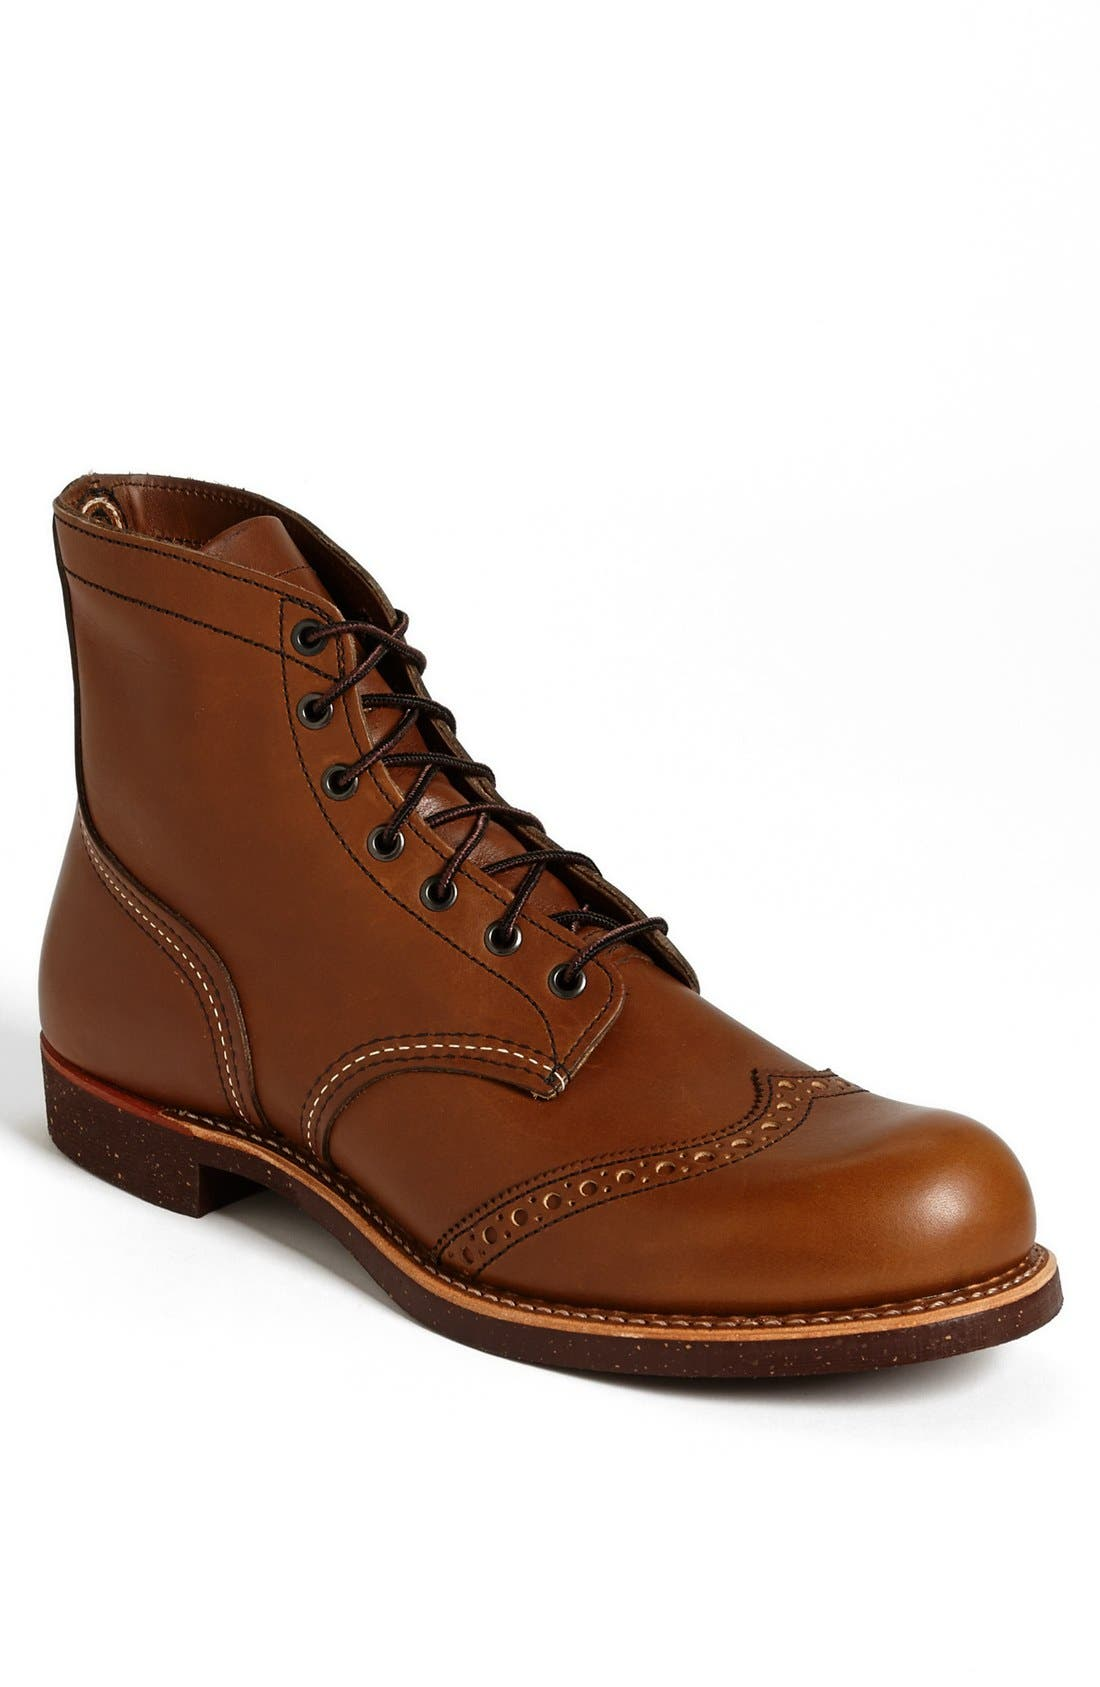 Alternate Image 1 Selected - Red Wing 'Brogue Ranger' Wingtip Boot